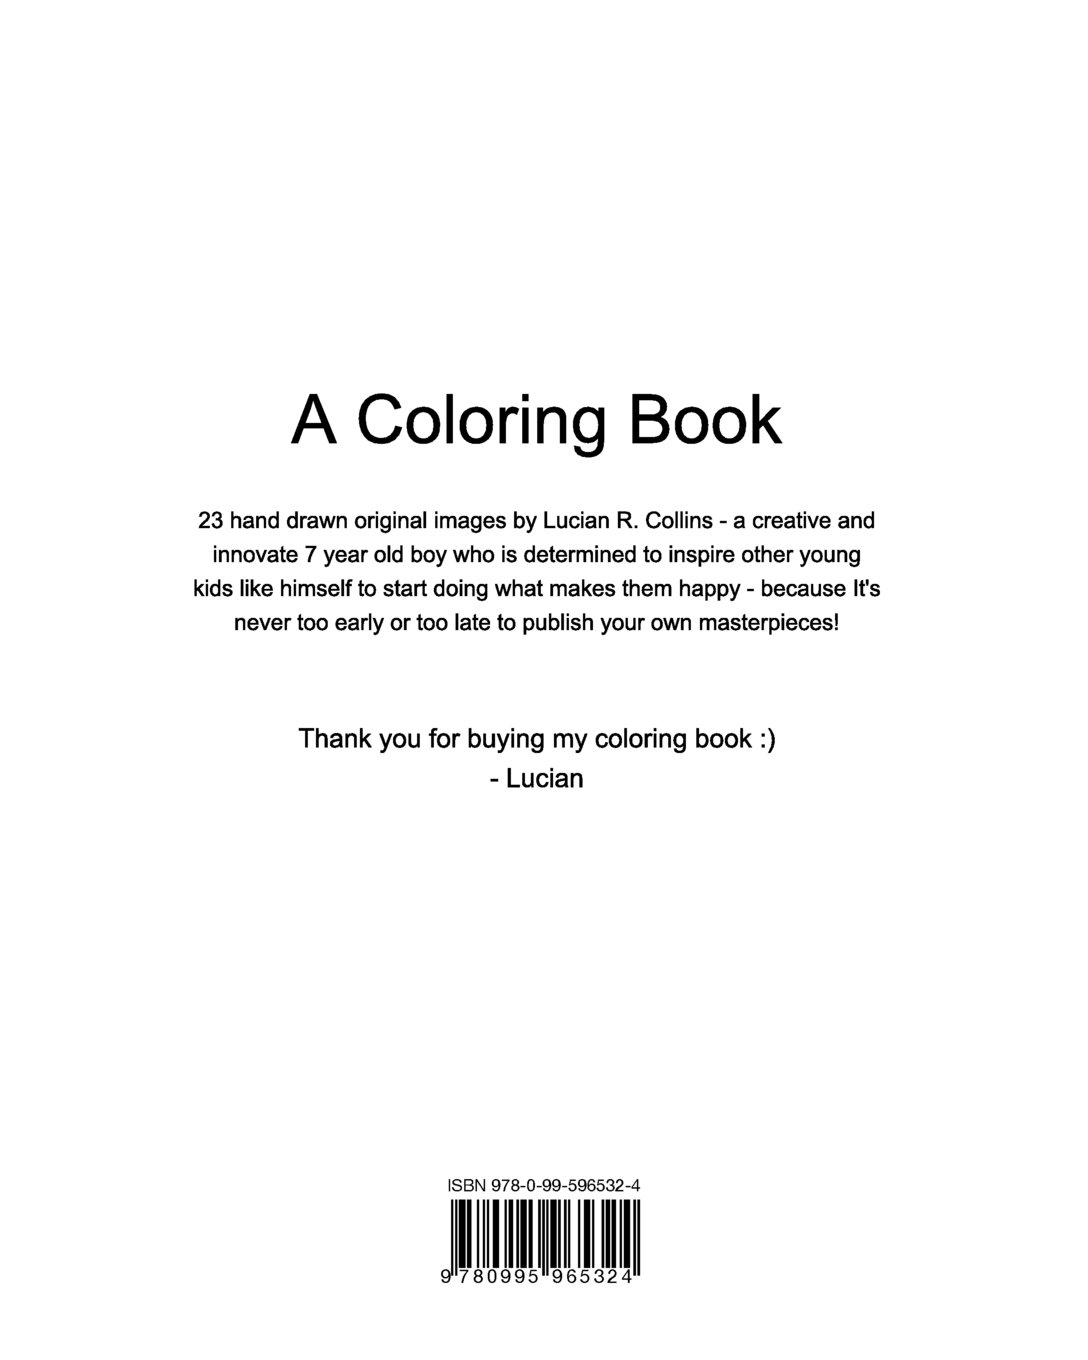 a coloring book lucian r collins 9780995965324 amazoncom books - Publish Your Own Coloring Book